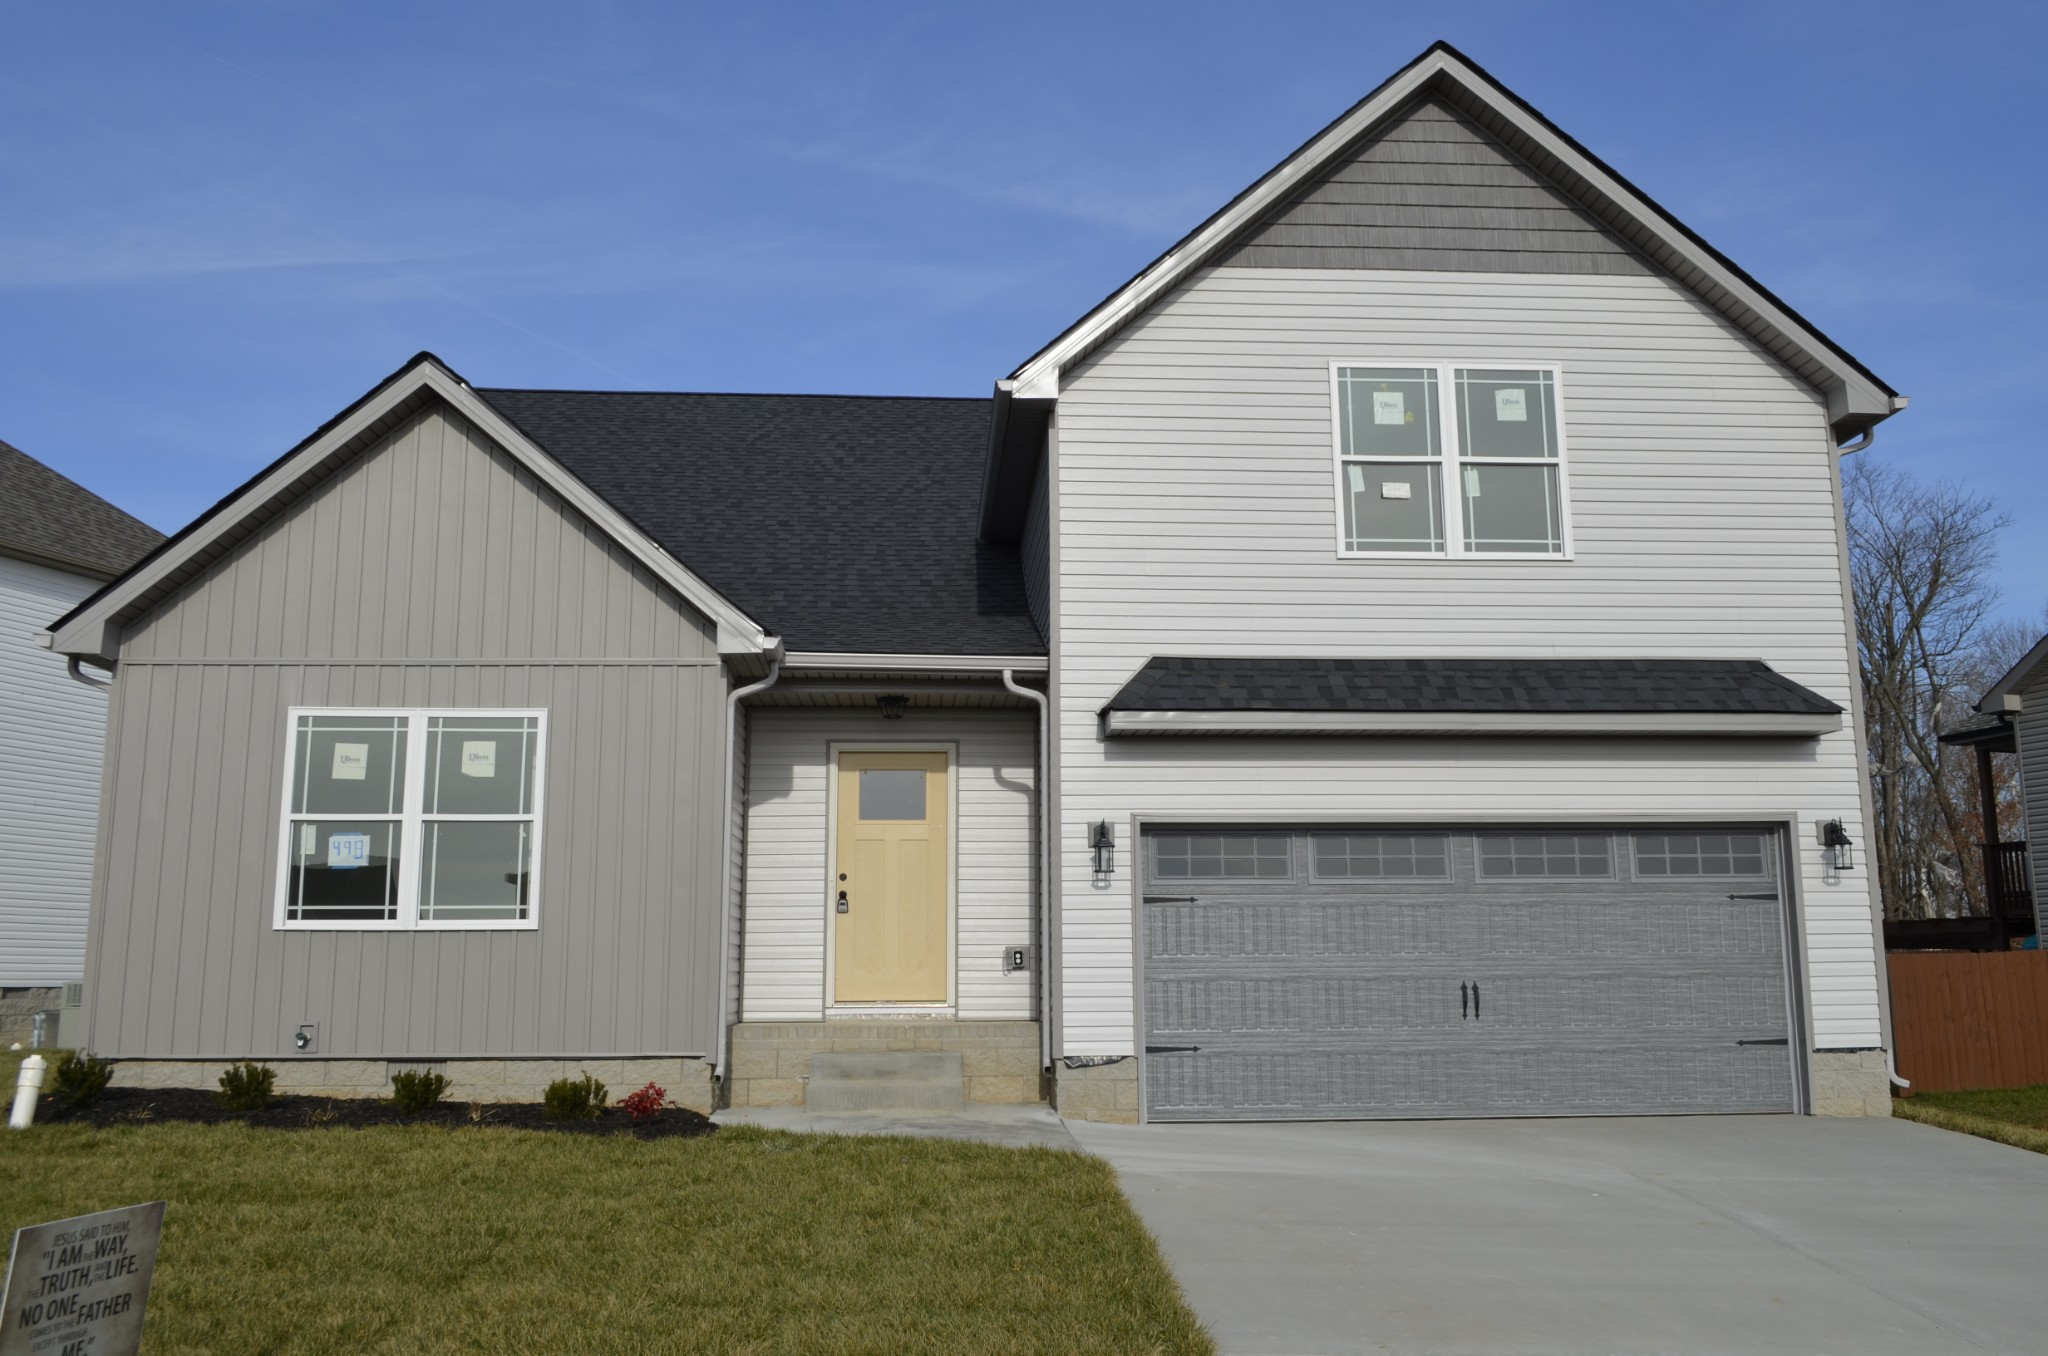 1053 Charles Thomas Dr Property Photo - Clarksville, TN real estate listing